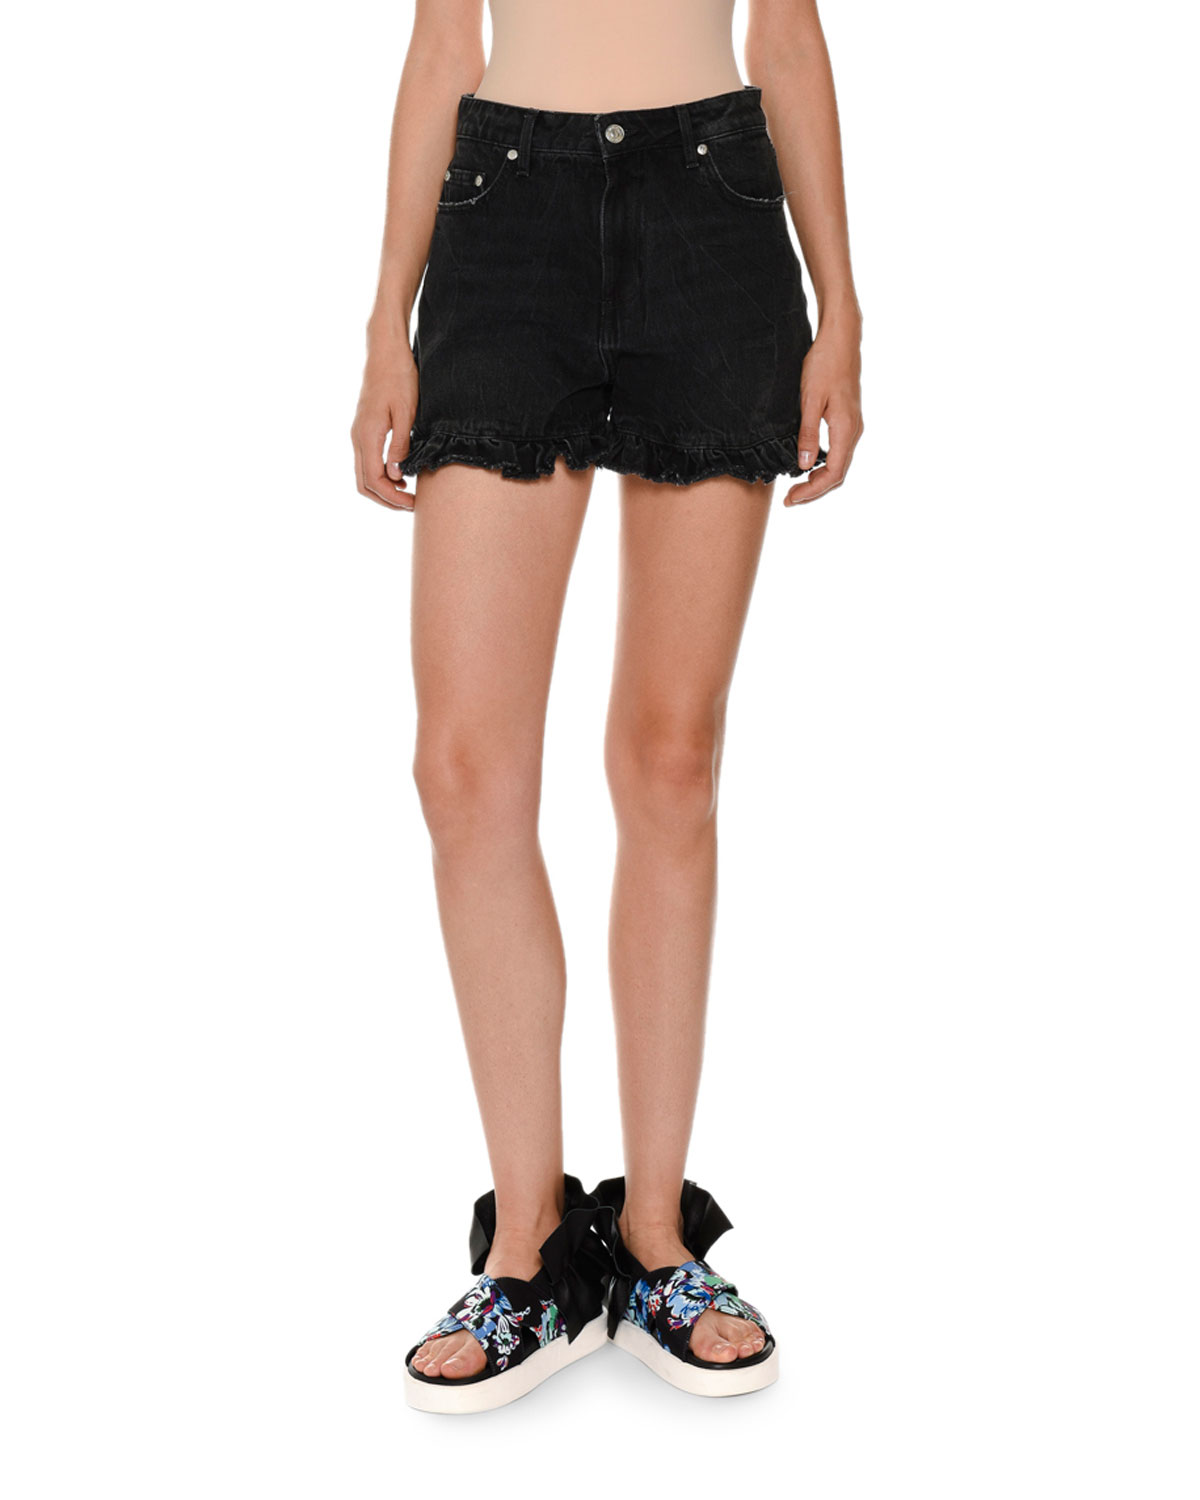 717795444c MSGM Denim Ruffle Shorts, Black | Neiman Marcus